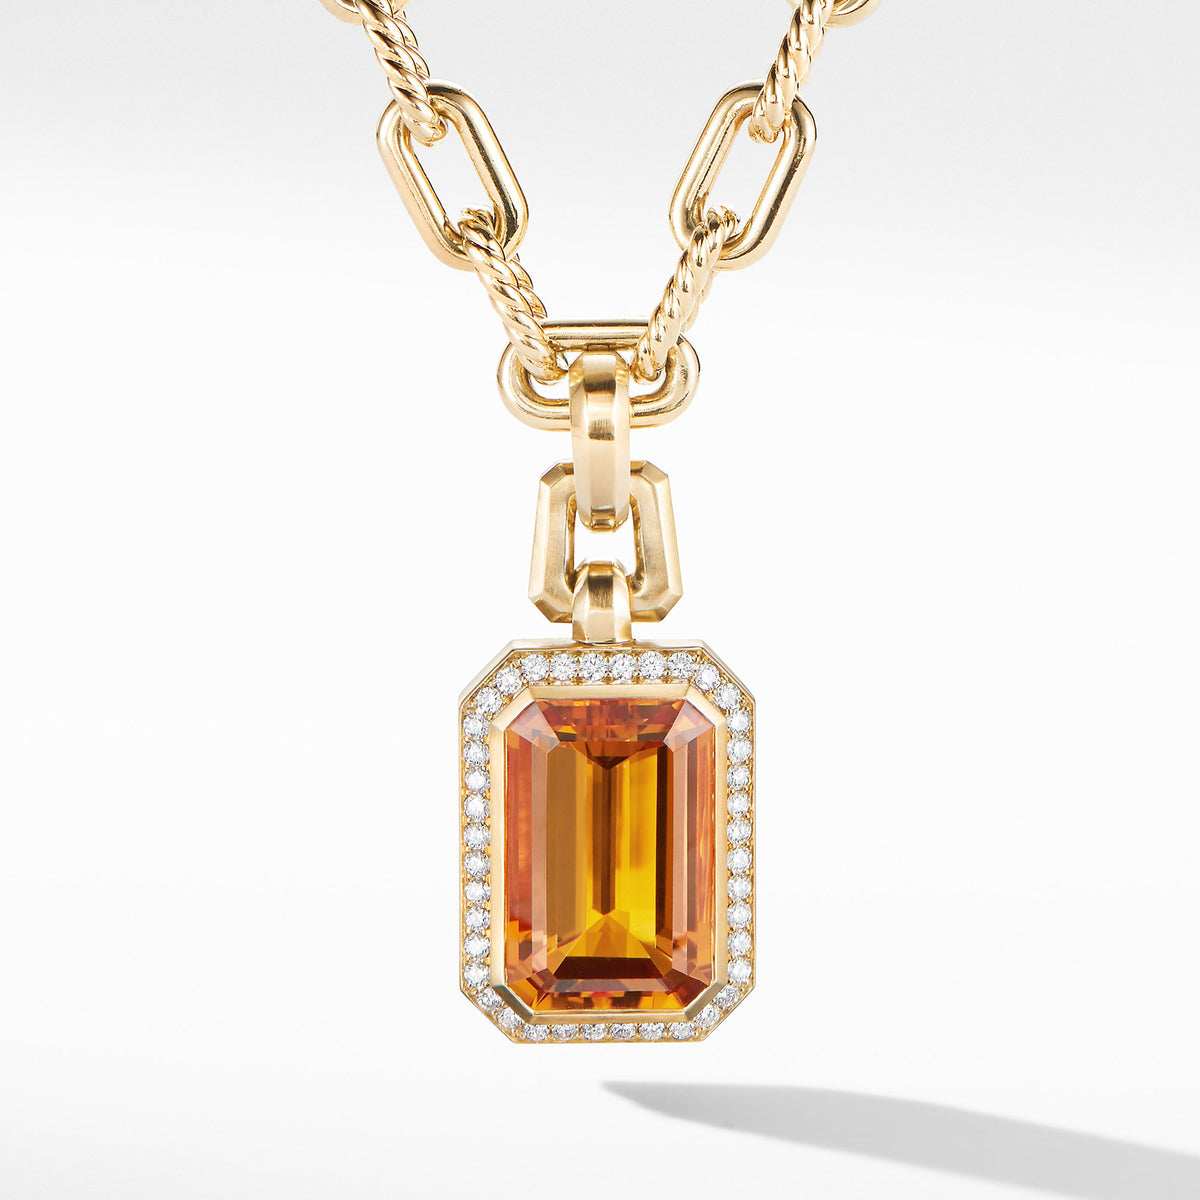 Novella Pendant in 18K Yellow Gold with Madeira Citrine and Diamonds